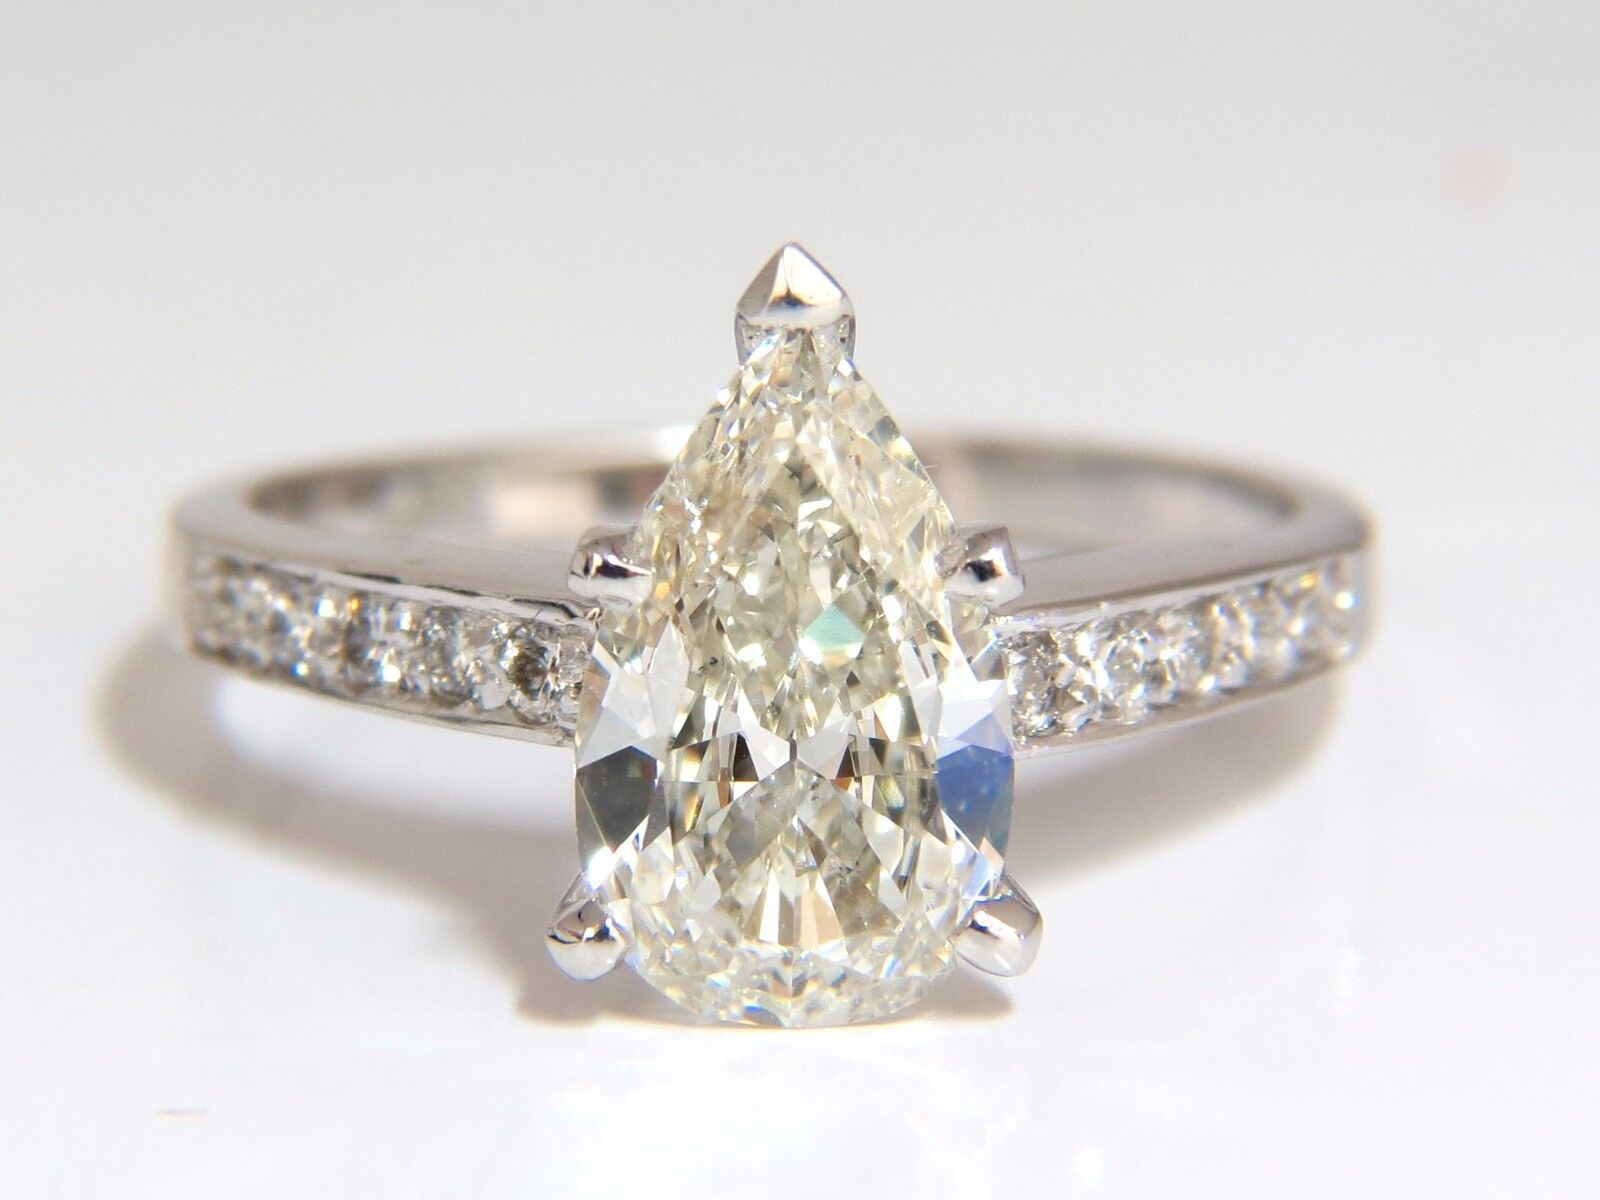 GIA Certified 1.49ct Pear Shape diamond ring .20ct. round accents 14kt 2